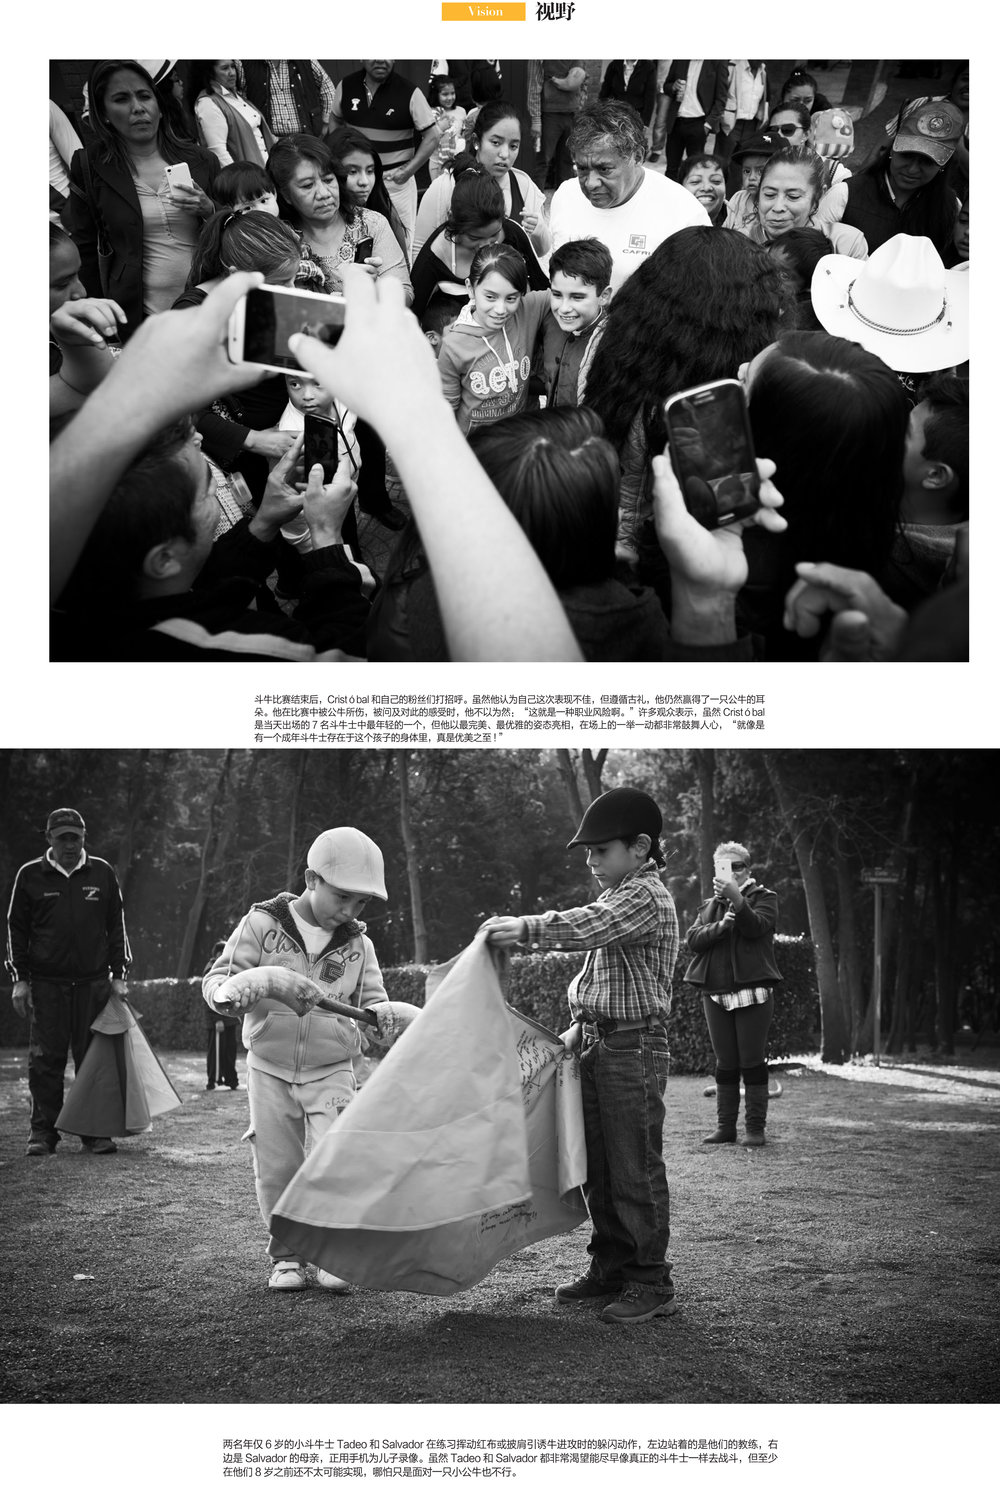 China National Travel Magazine - May 2018 - The Little Bullfighters -page 3 & 4